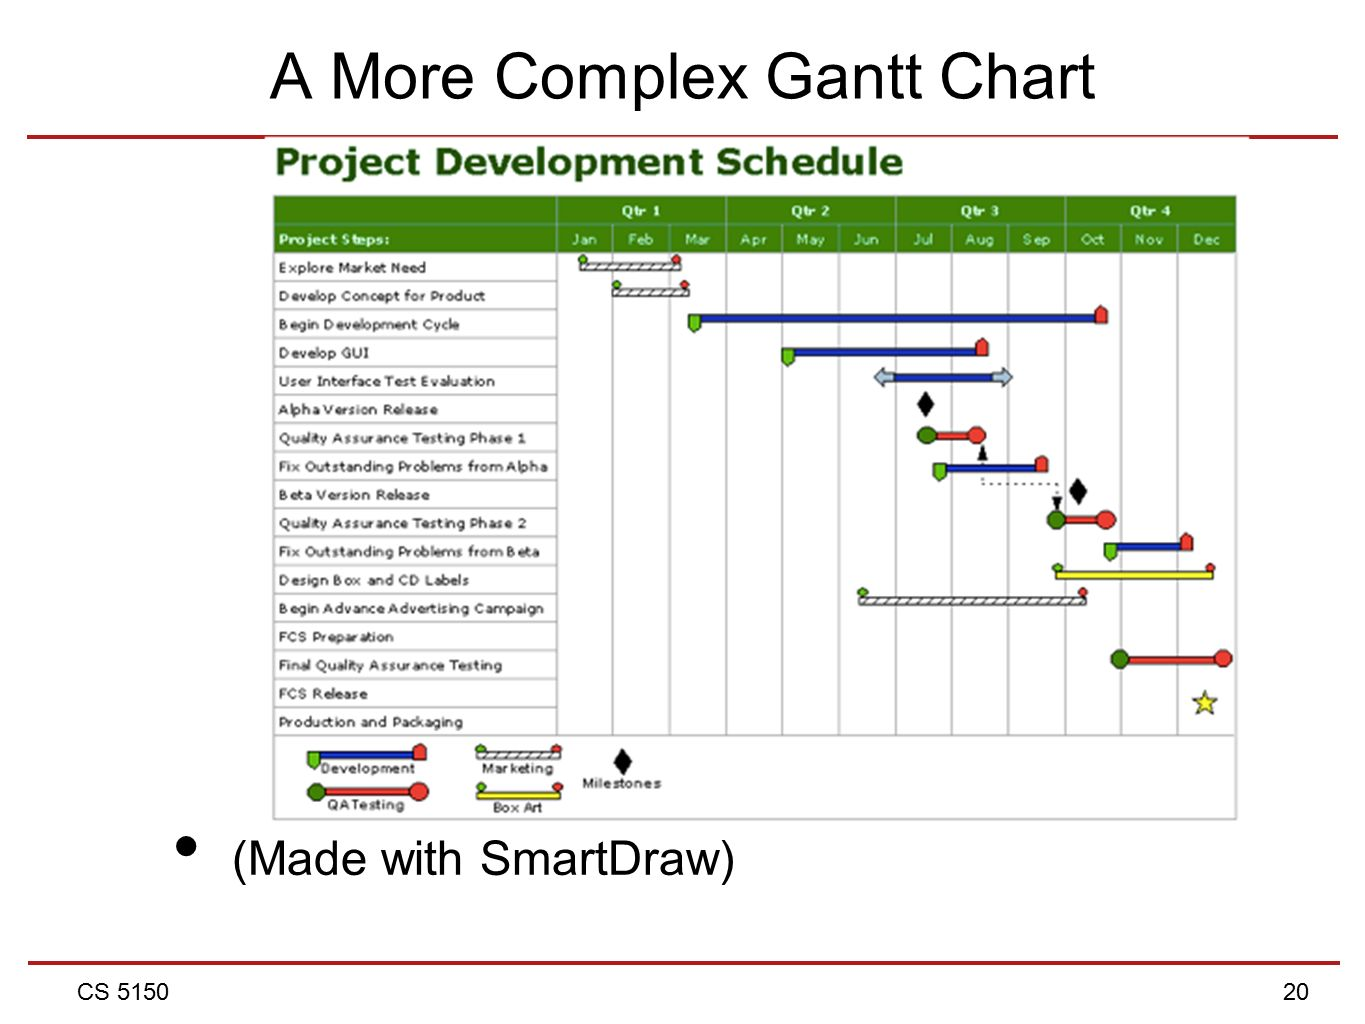 Cs 5150 software engineering lecture 6 project management ppt 20 cs 5150 20 a more complex gantt chart made with smartdraw geenschuldenfo Image collections